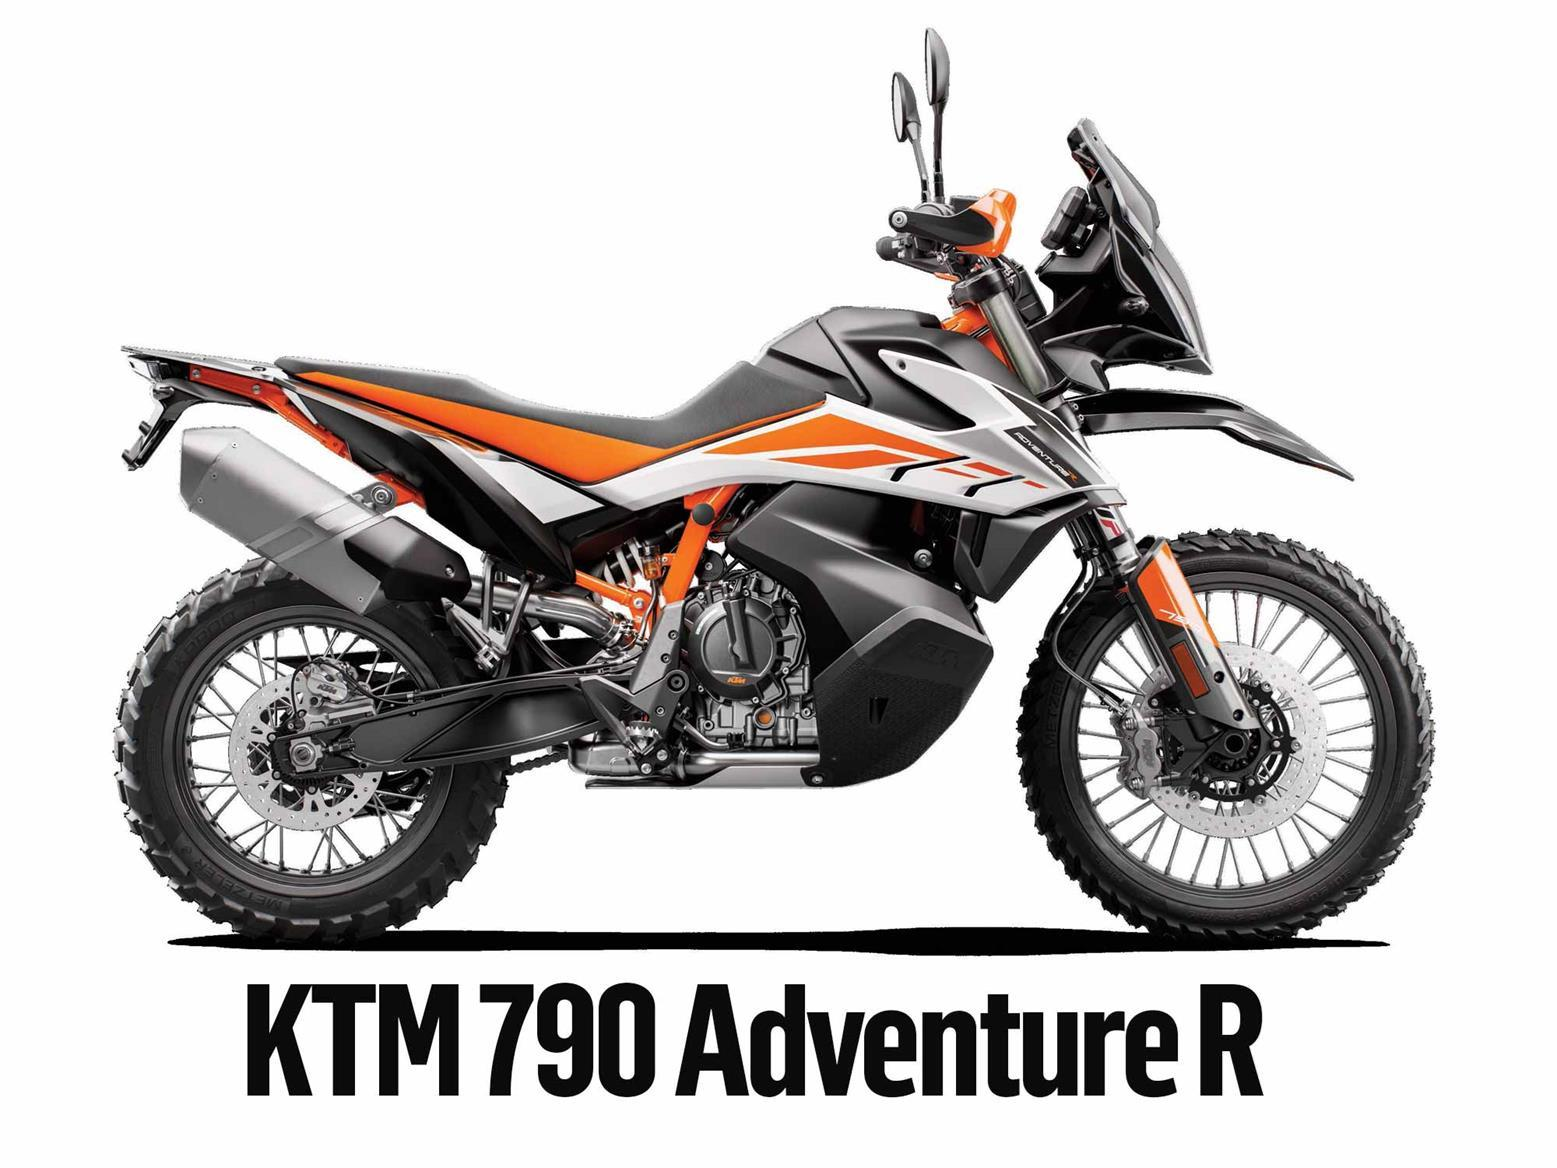 Read MCN's detailed KTM 790 Adventure R long-term test review here